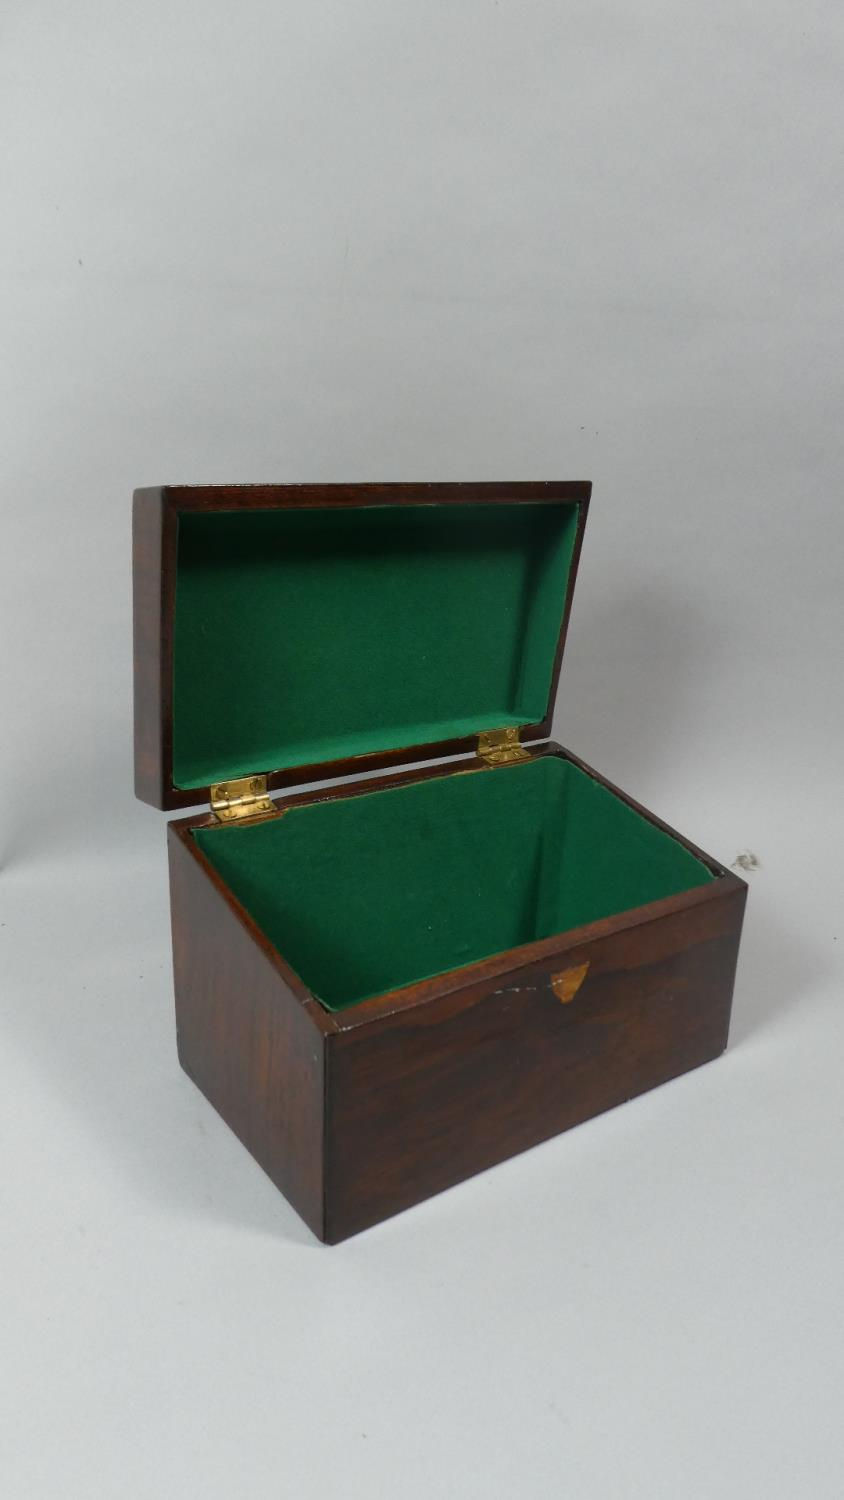 Lot 12 - A 19th Century Rosewood Envelope Box with Engraved Brass Escutcheon, 21cm Wide